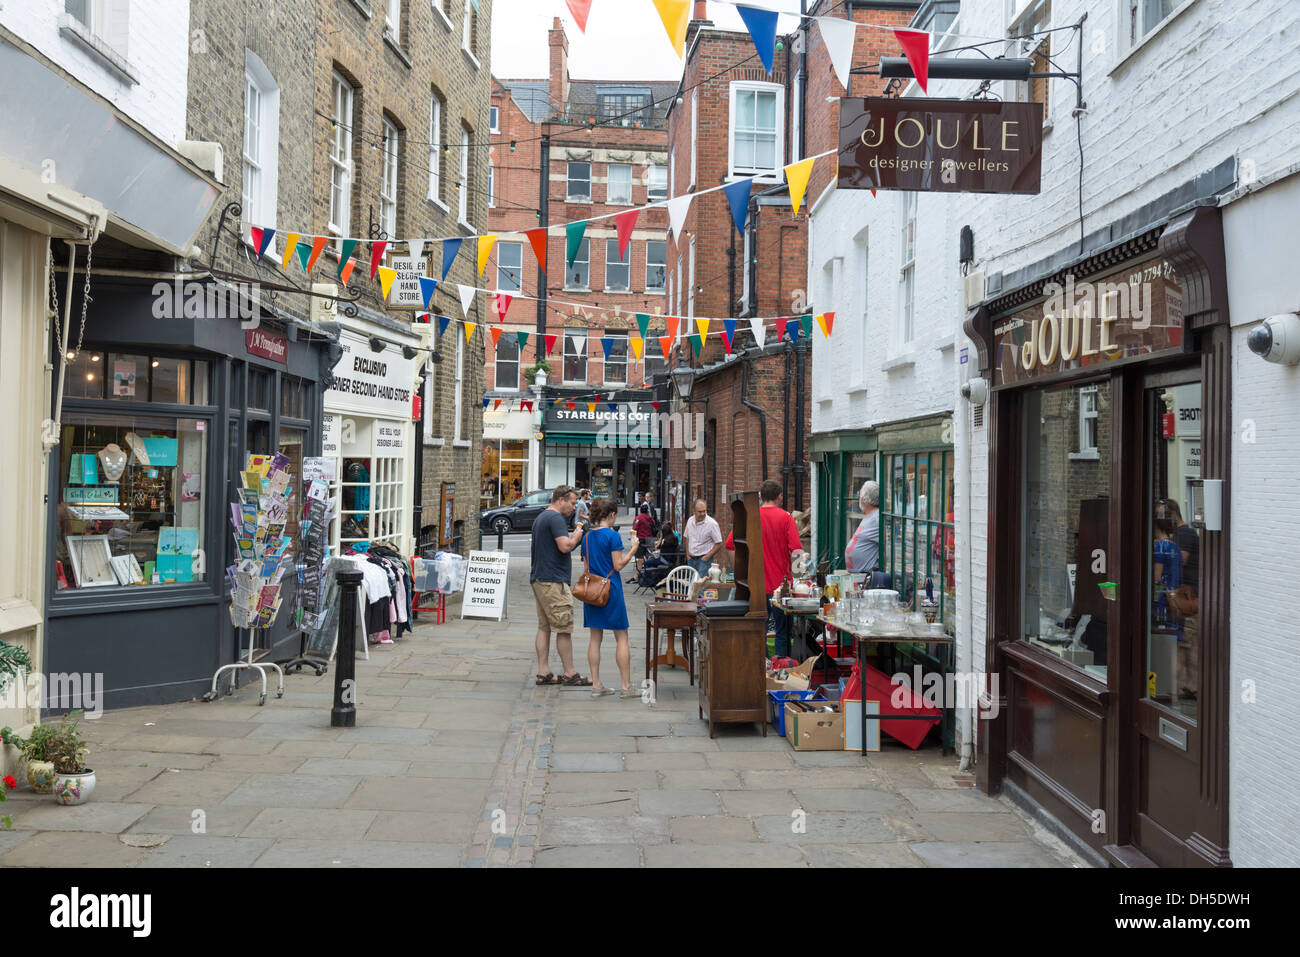 Small shops and boutiques on Flask Walk, Hampstead, London, England, UK - Stock Image